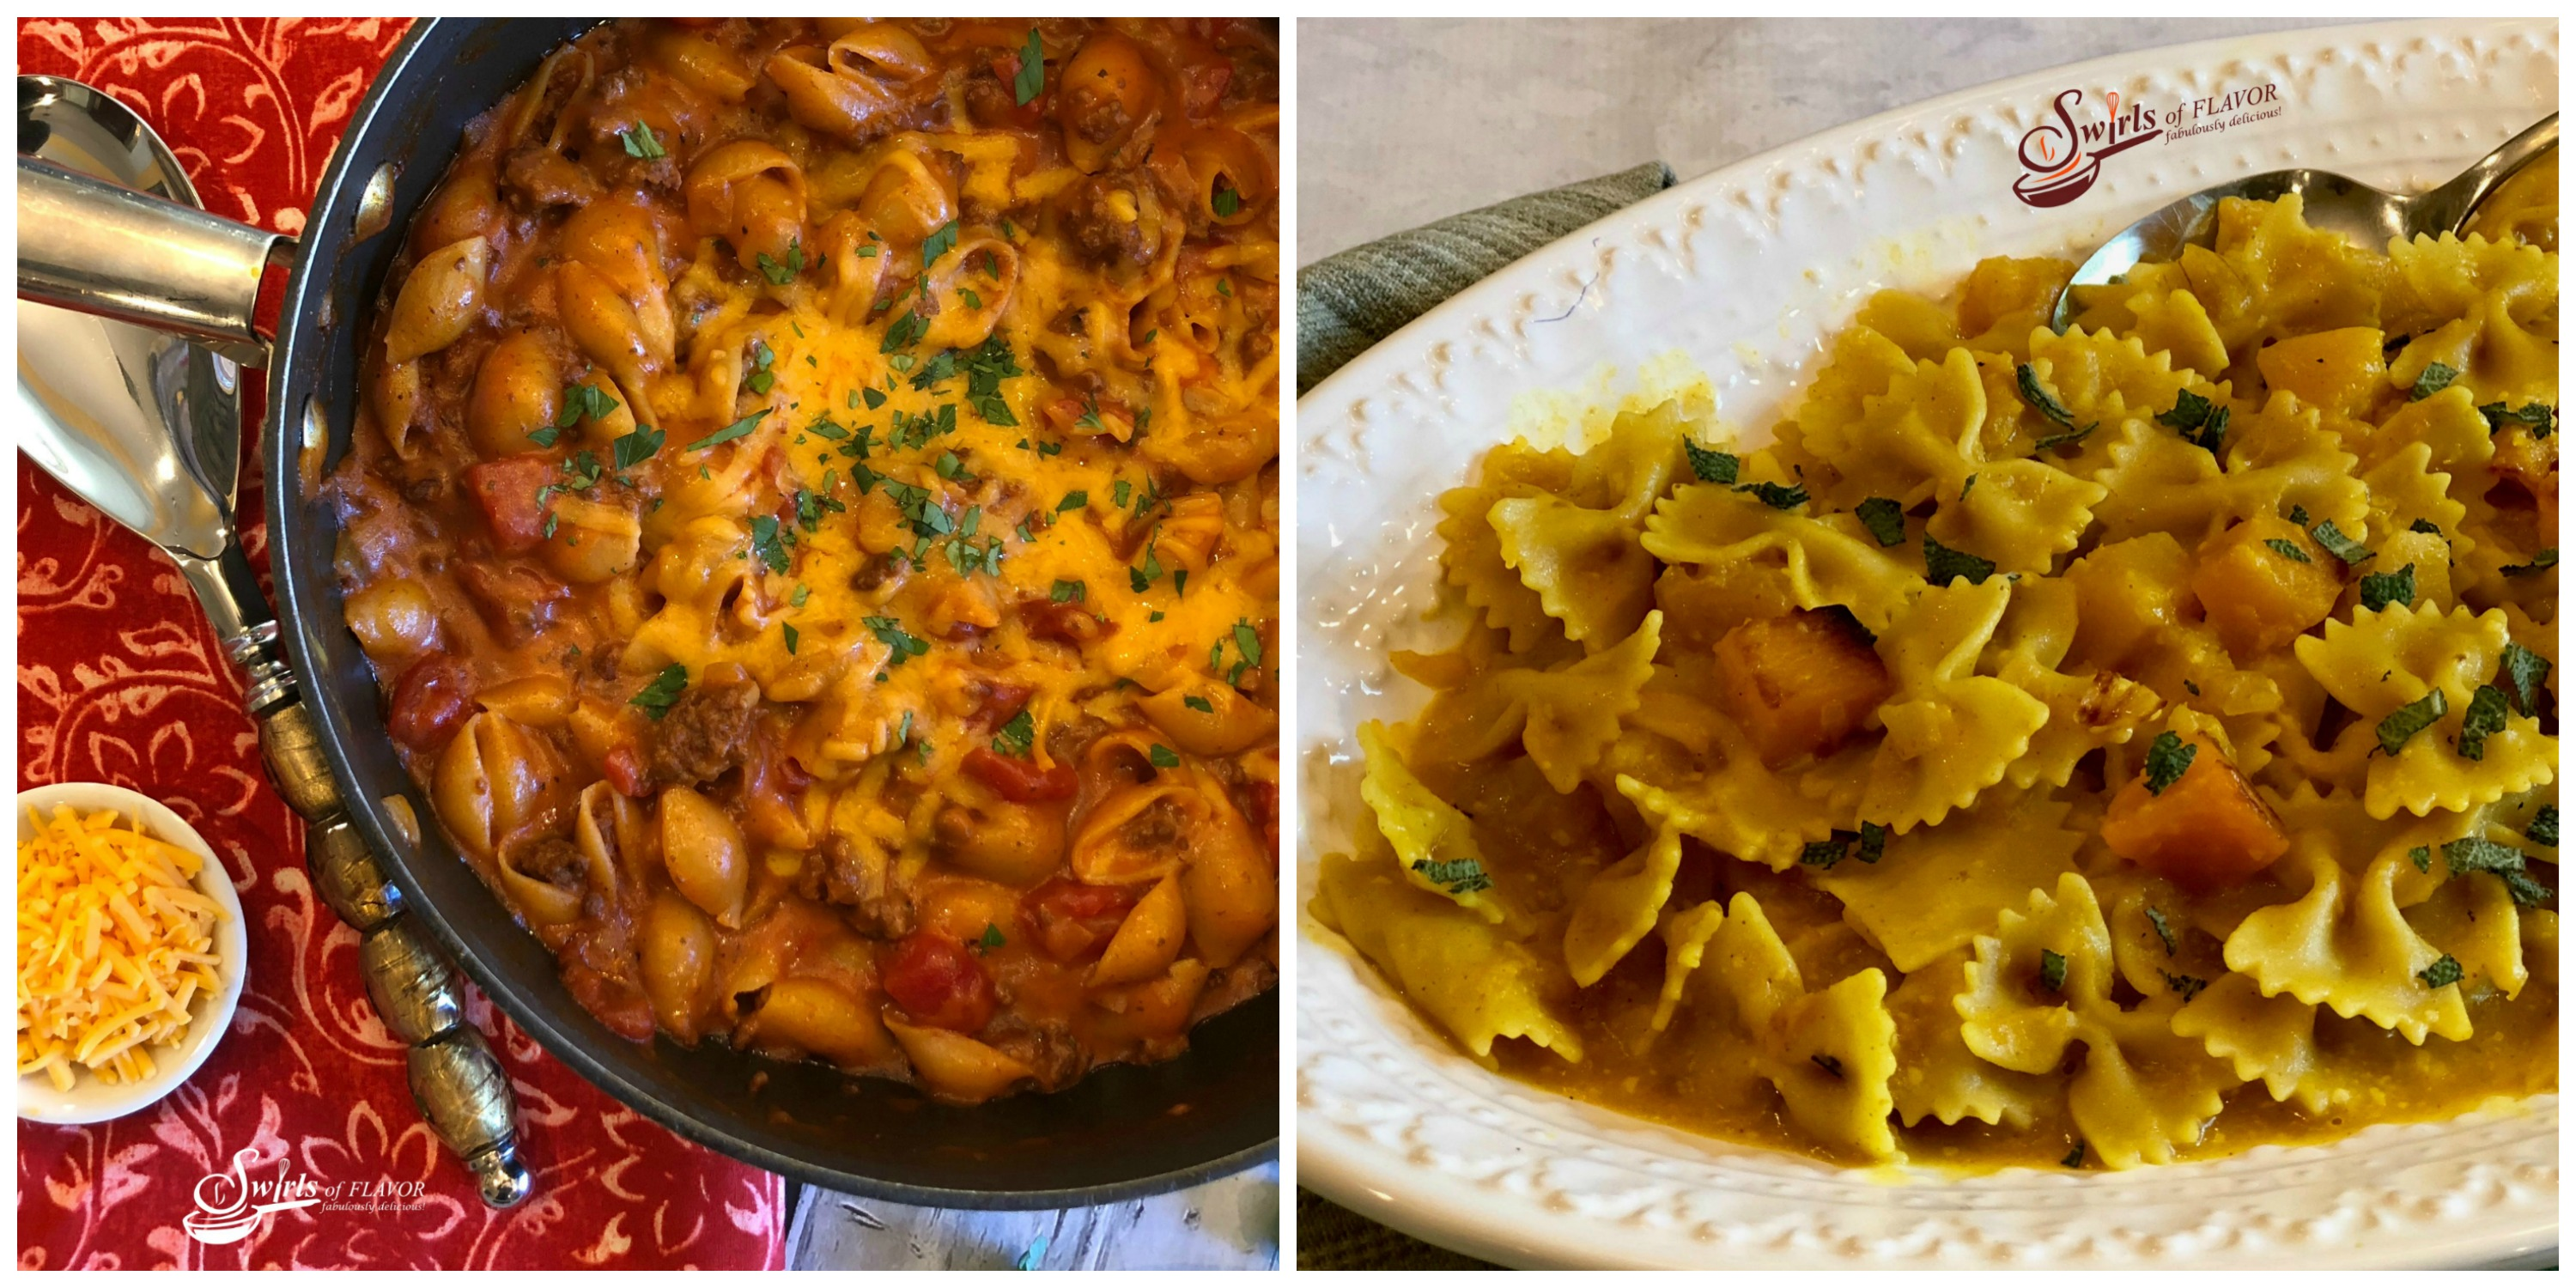 Chili Mac N Cheese and Butternut Squash Pasta and Sage